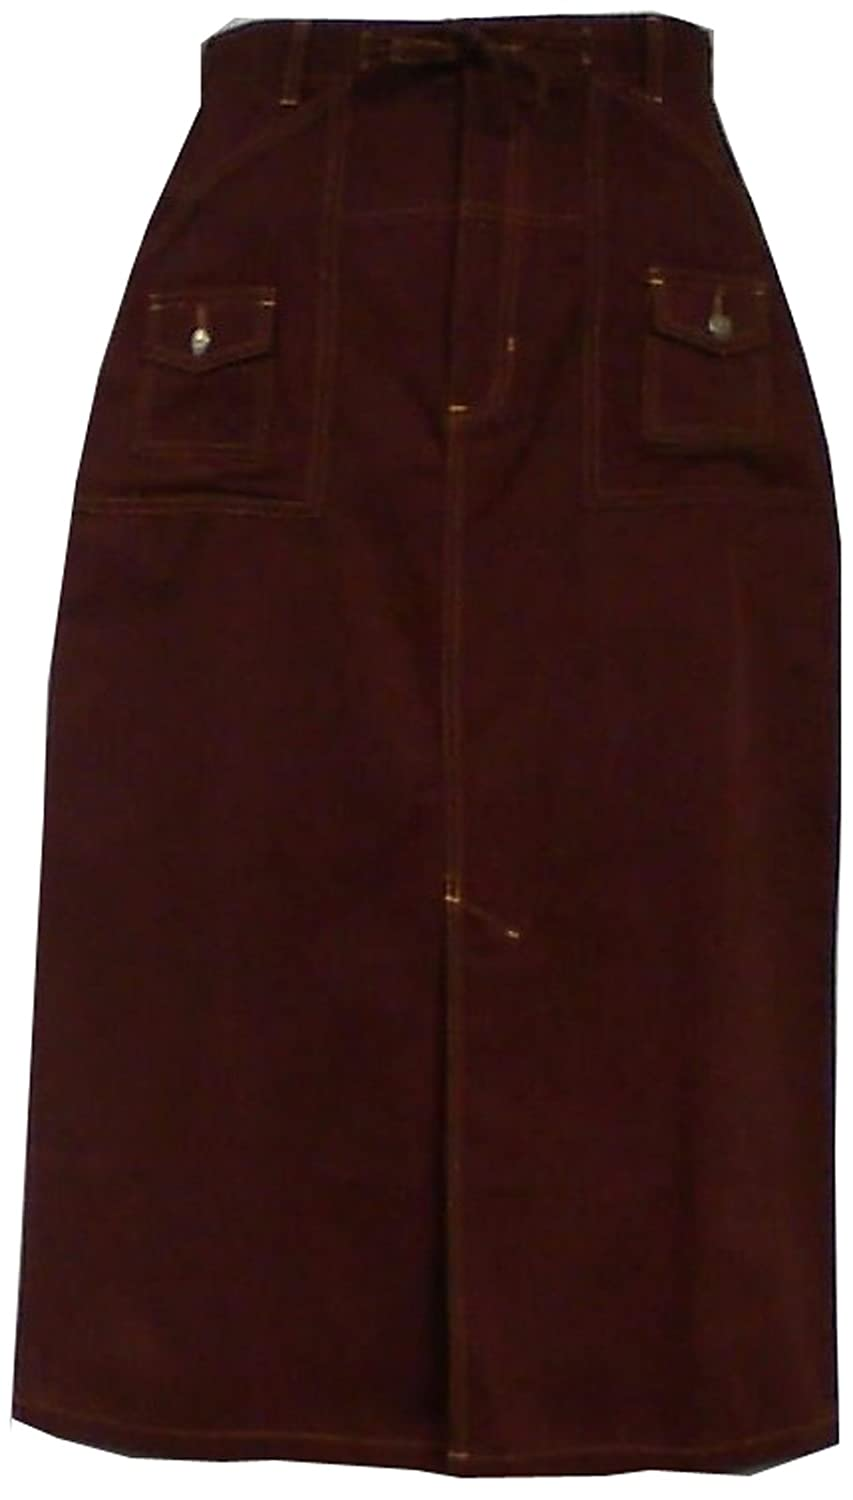 Decoraapparel SKIRT レディース B079VXG5ZF 4X|Wine Maroon Wine Maroon 4X